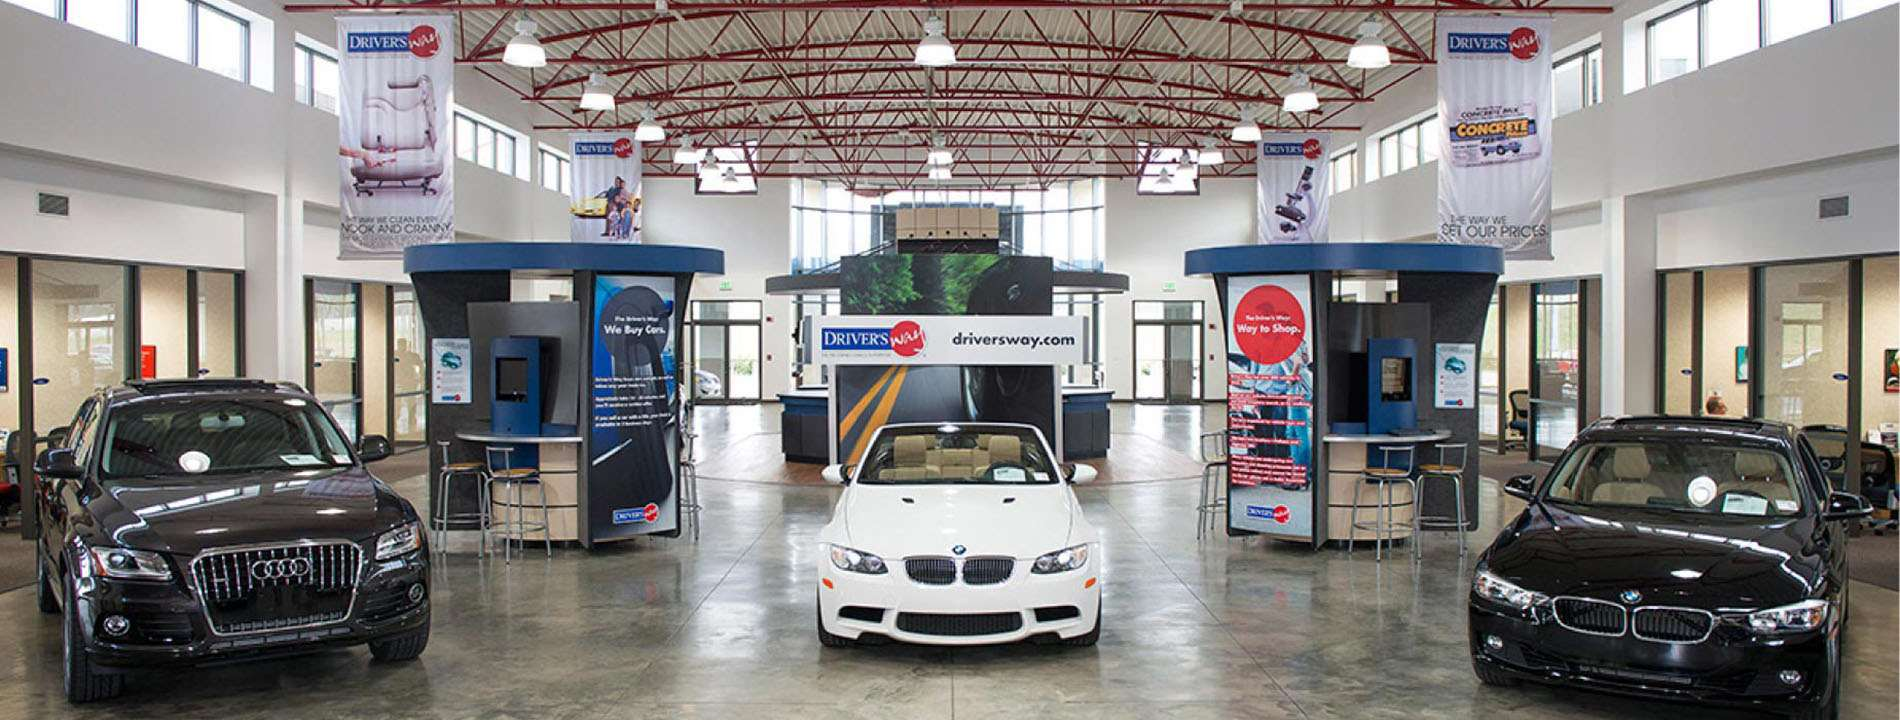 Driver's Way Indoor Showroom